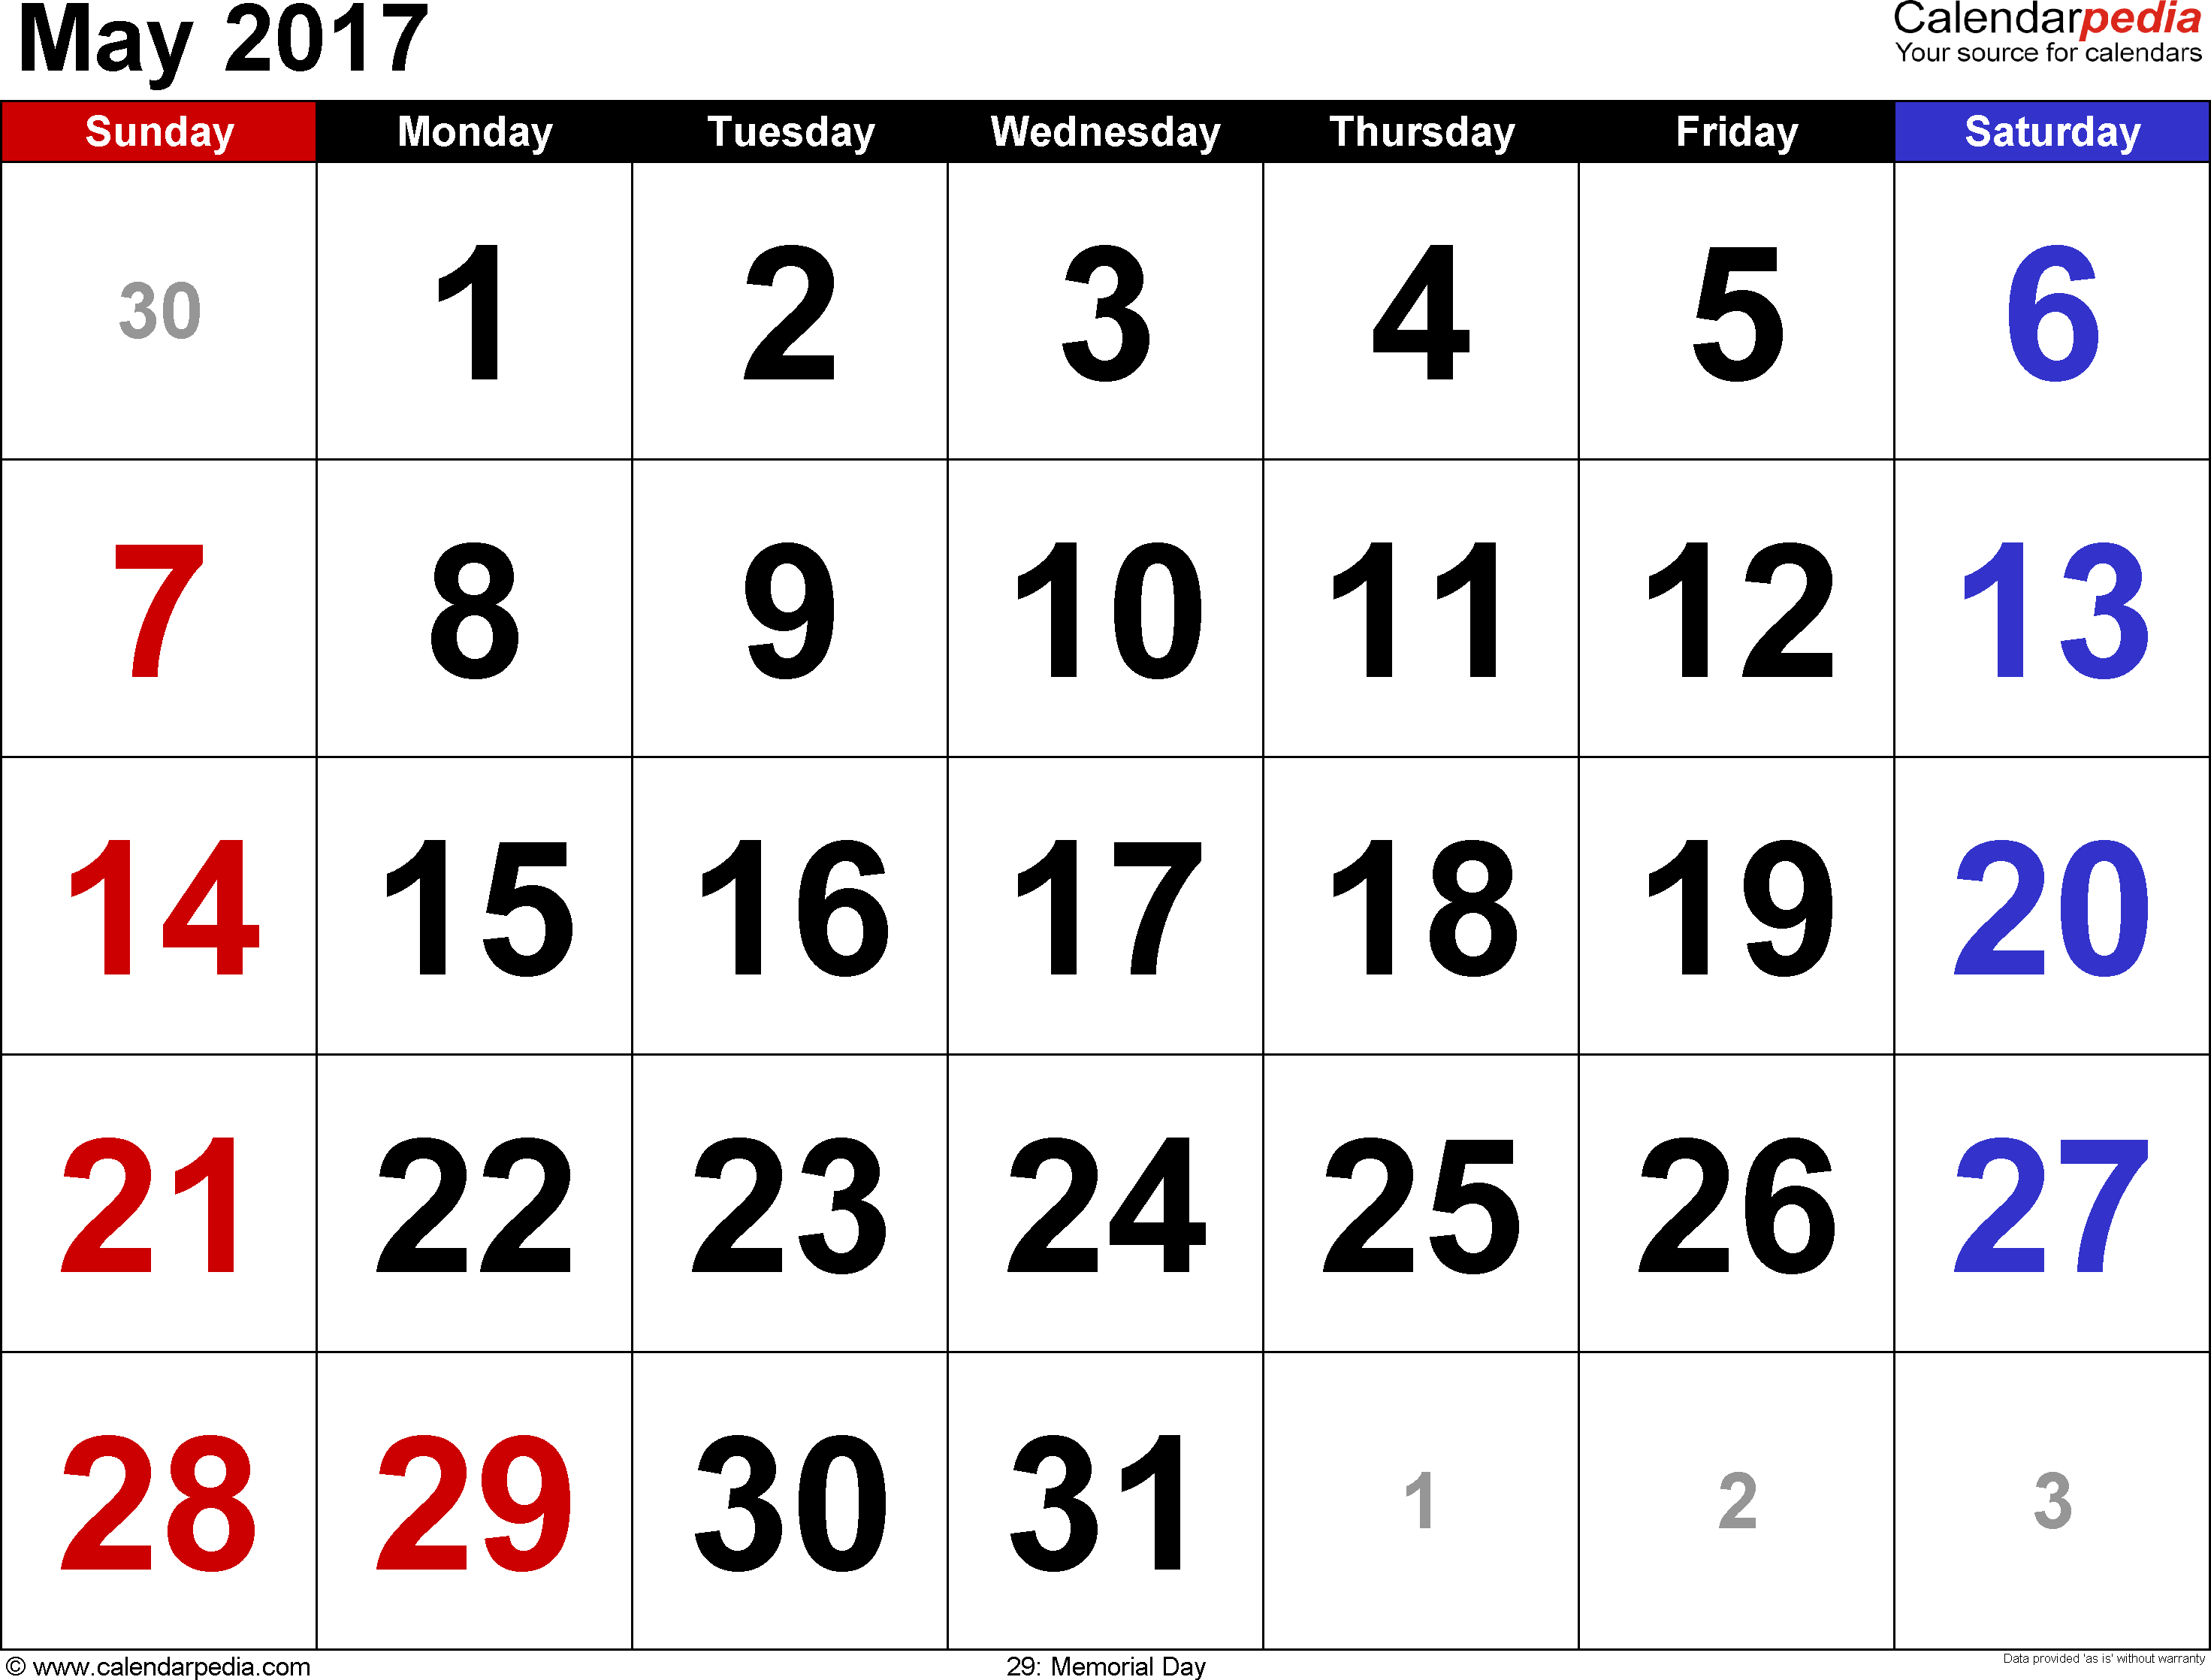 May 2017 calendar for word, excel, pdf